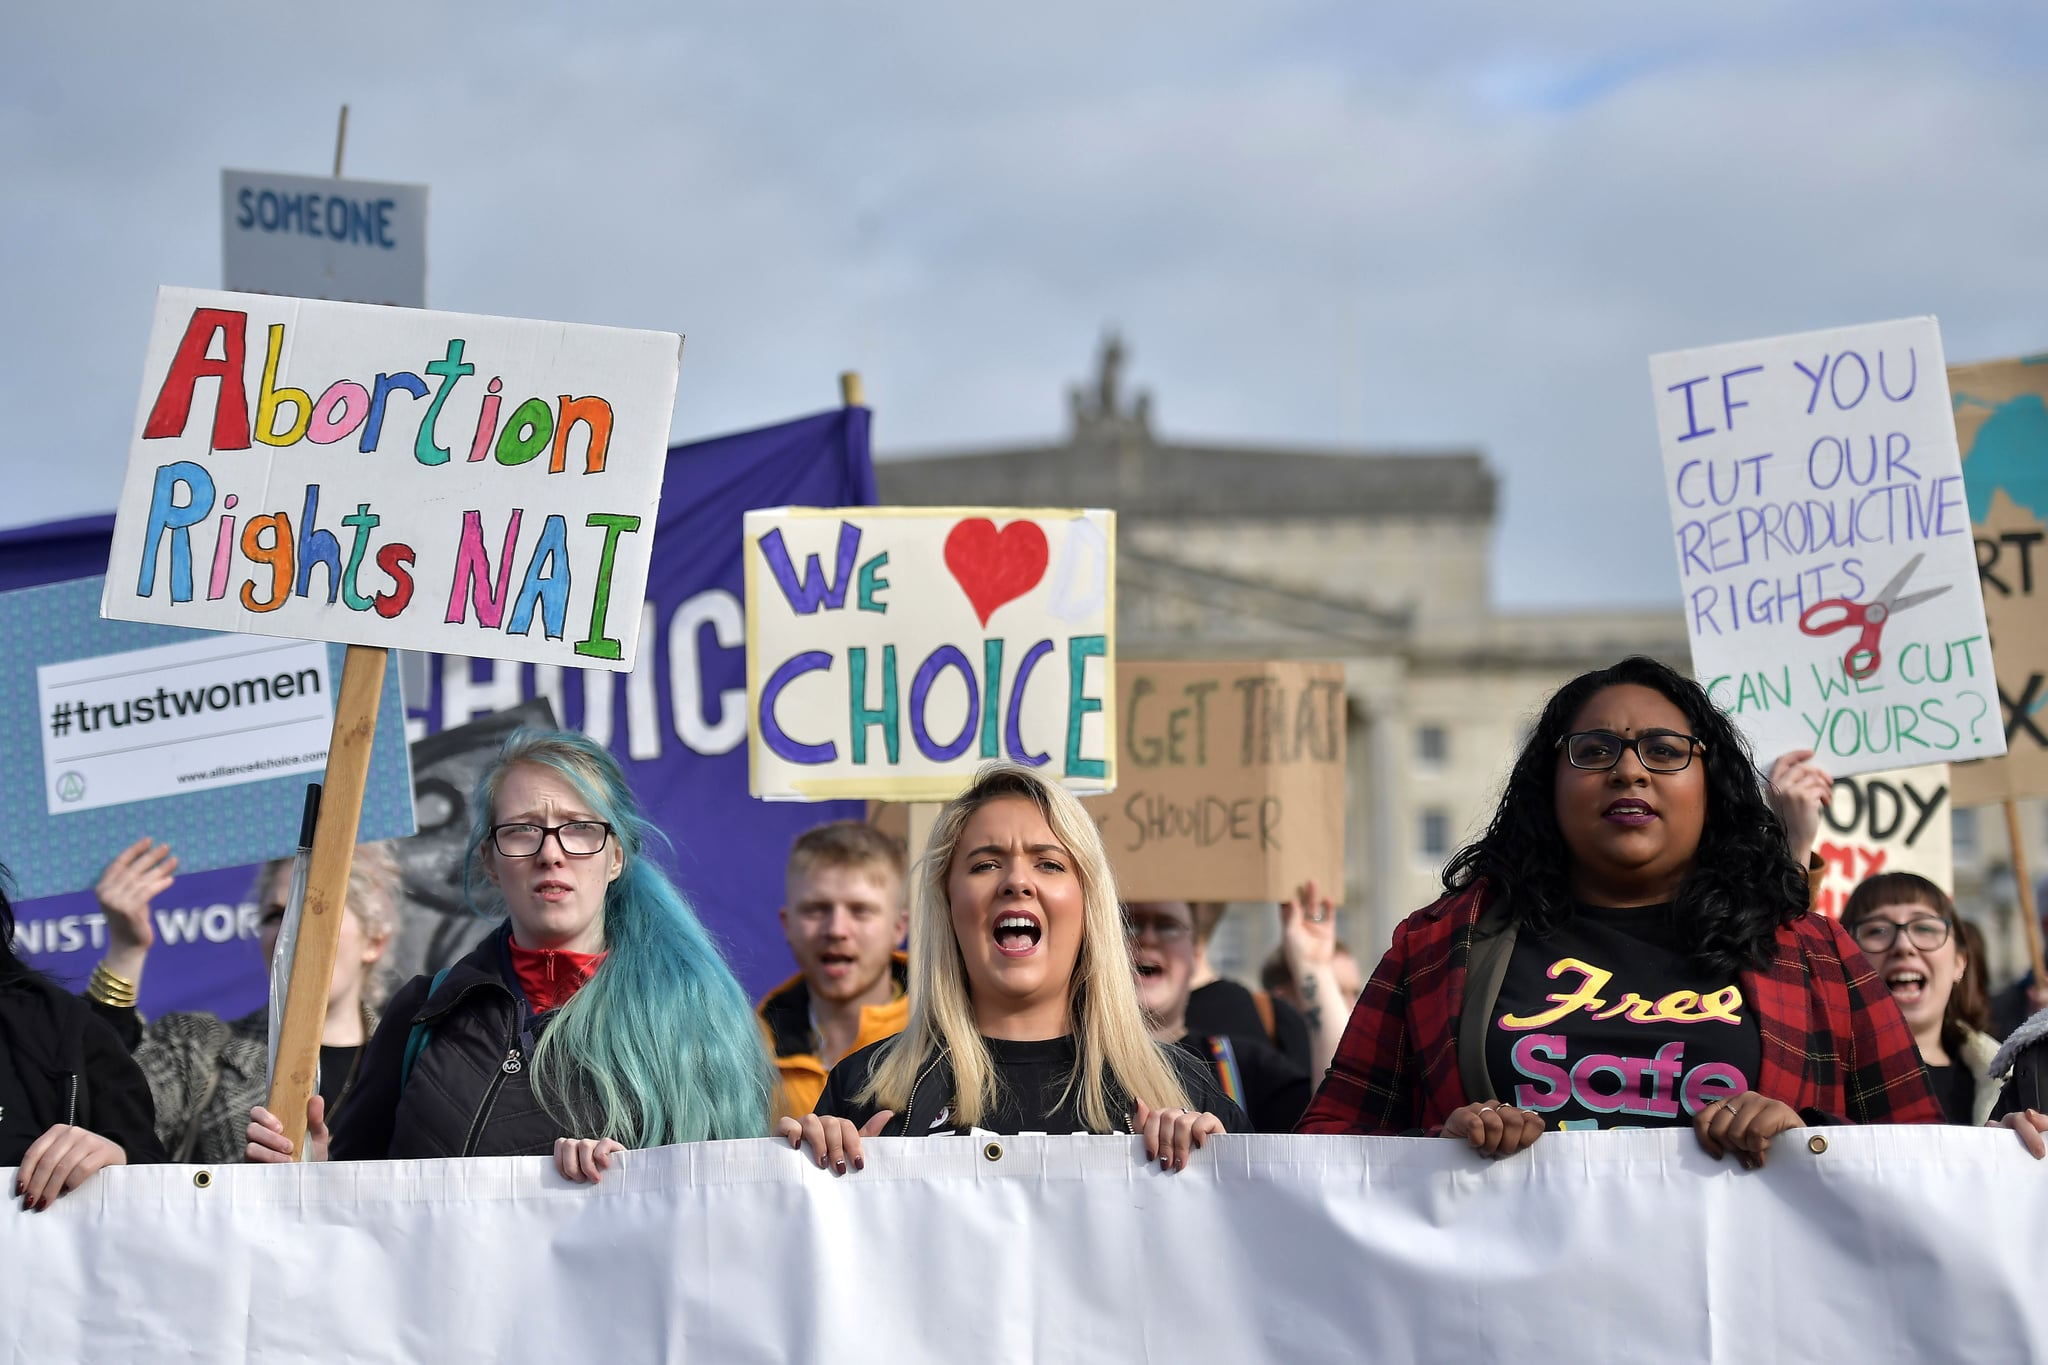 BELFAST, NORTHERN IRELAND - OCTOBER 21: Members of pro choice group Alliance for Choice make their way to Stormont on October 21, 2019 in Belfast, Northern Ireland. Legislation brought in by MPs at Westminster in the absence of the Northern Ireland power sharing executive meant that abortion will be decriminalised in the province unless the executive reconvened by the 21st of October. A last ditch attempt by the Democratic Unionist party led by Arlene Foster to block the imminent changers to Northern Ireland's strict abortion laws failed today due to the lack of cross party involvement at Stormont. (Photo by Charles McQuillan/Getty Images)